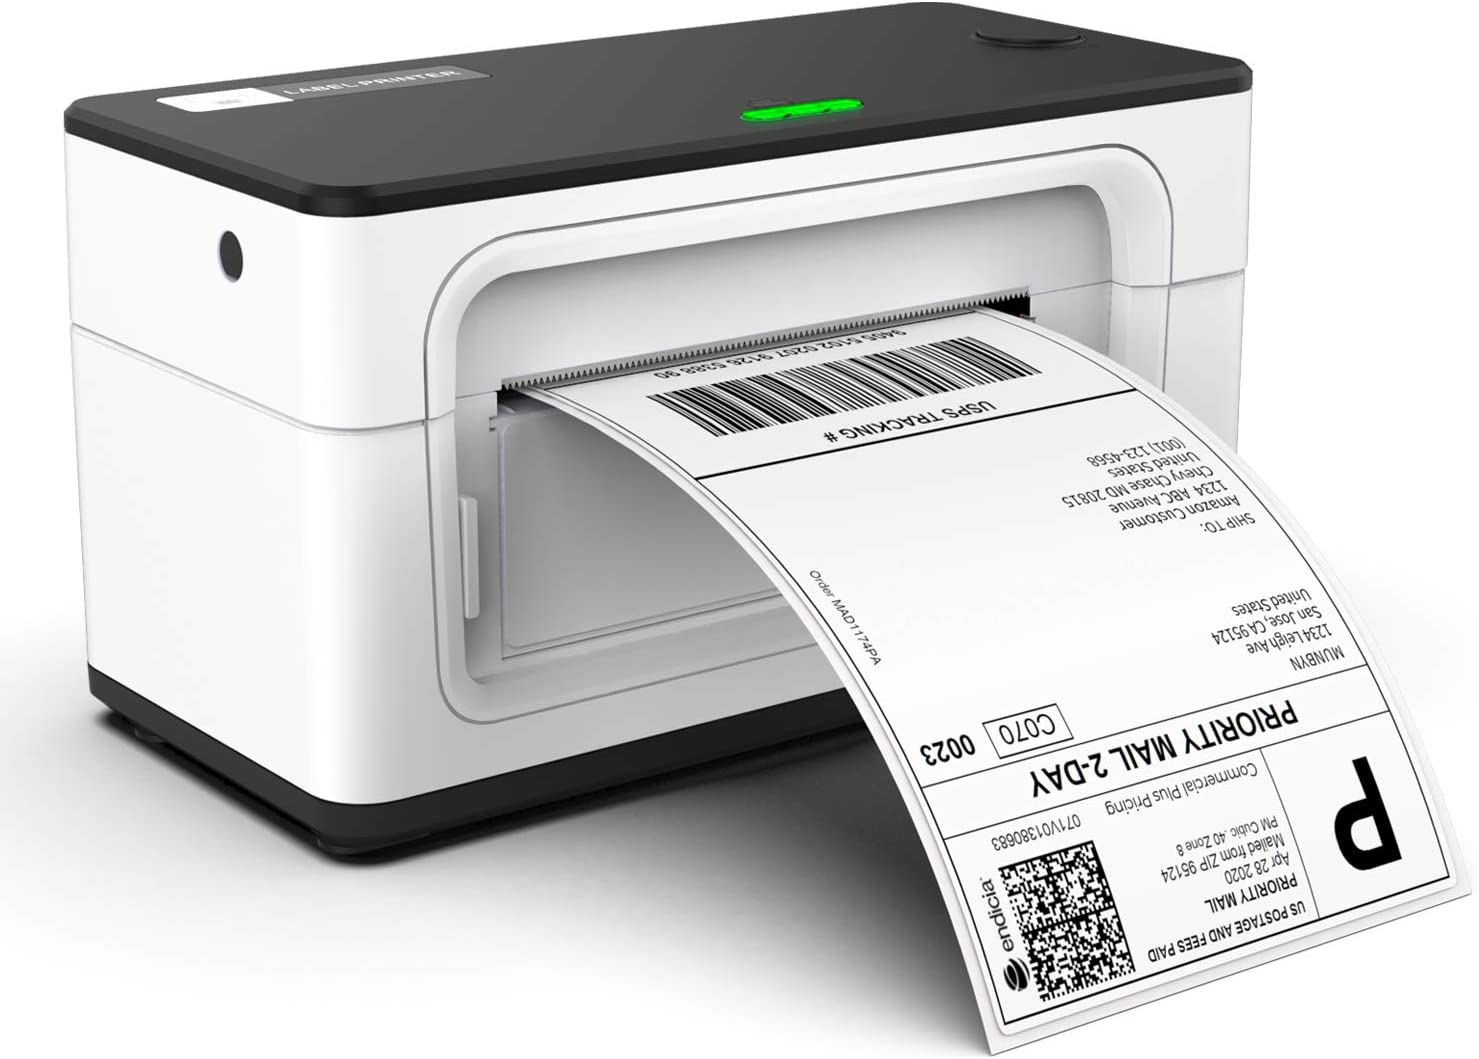 MUNBYN Thermal Label Printer 4x6, High Speed Direct USB Thermal Barcode 4×6 Shipping Label Printer Marker Writer Machine, One Click Set up,Compatible with Ebay, Amazon, FedEx,UPS,Shopify,USPS,Etsy